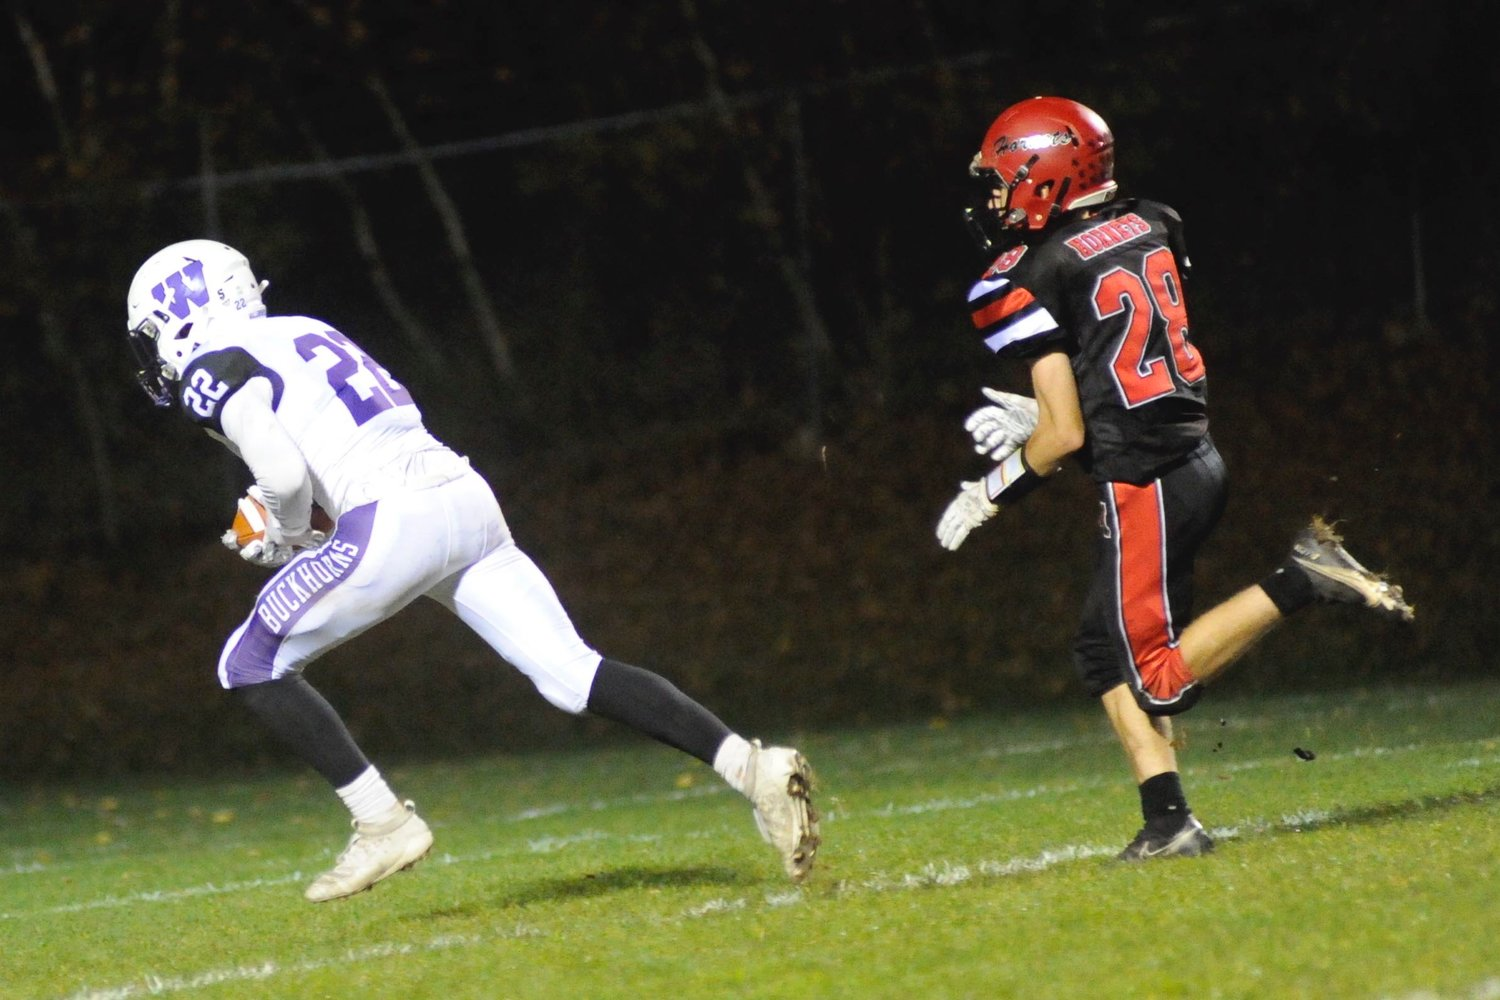 Touchdown bound. Wallenpaupack's TJ Schmalzle scores the first touchdown of the game on a 48-yard reception from QB Alex Gardsy in the second frame as Honesdale's Kage Southerton gives chase.